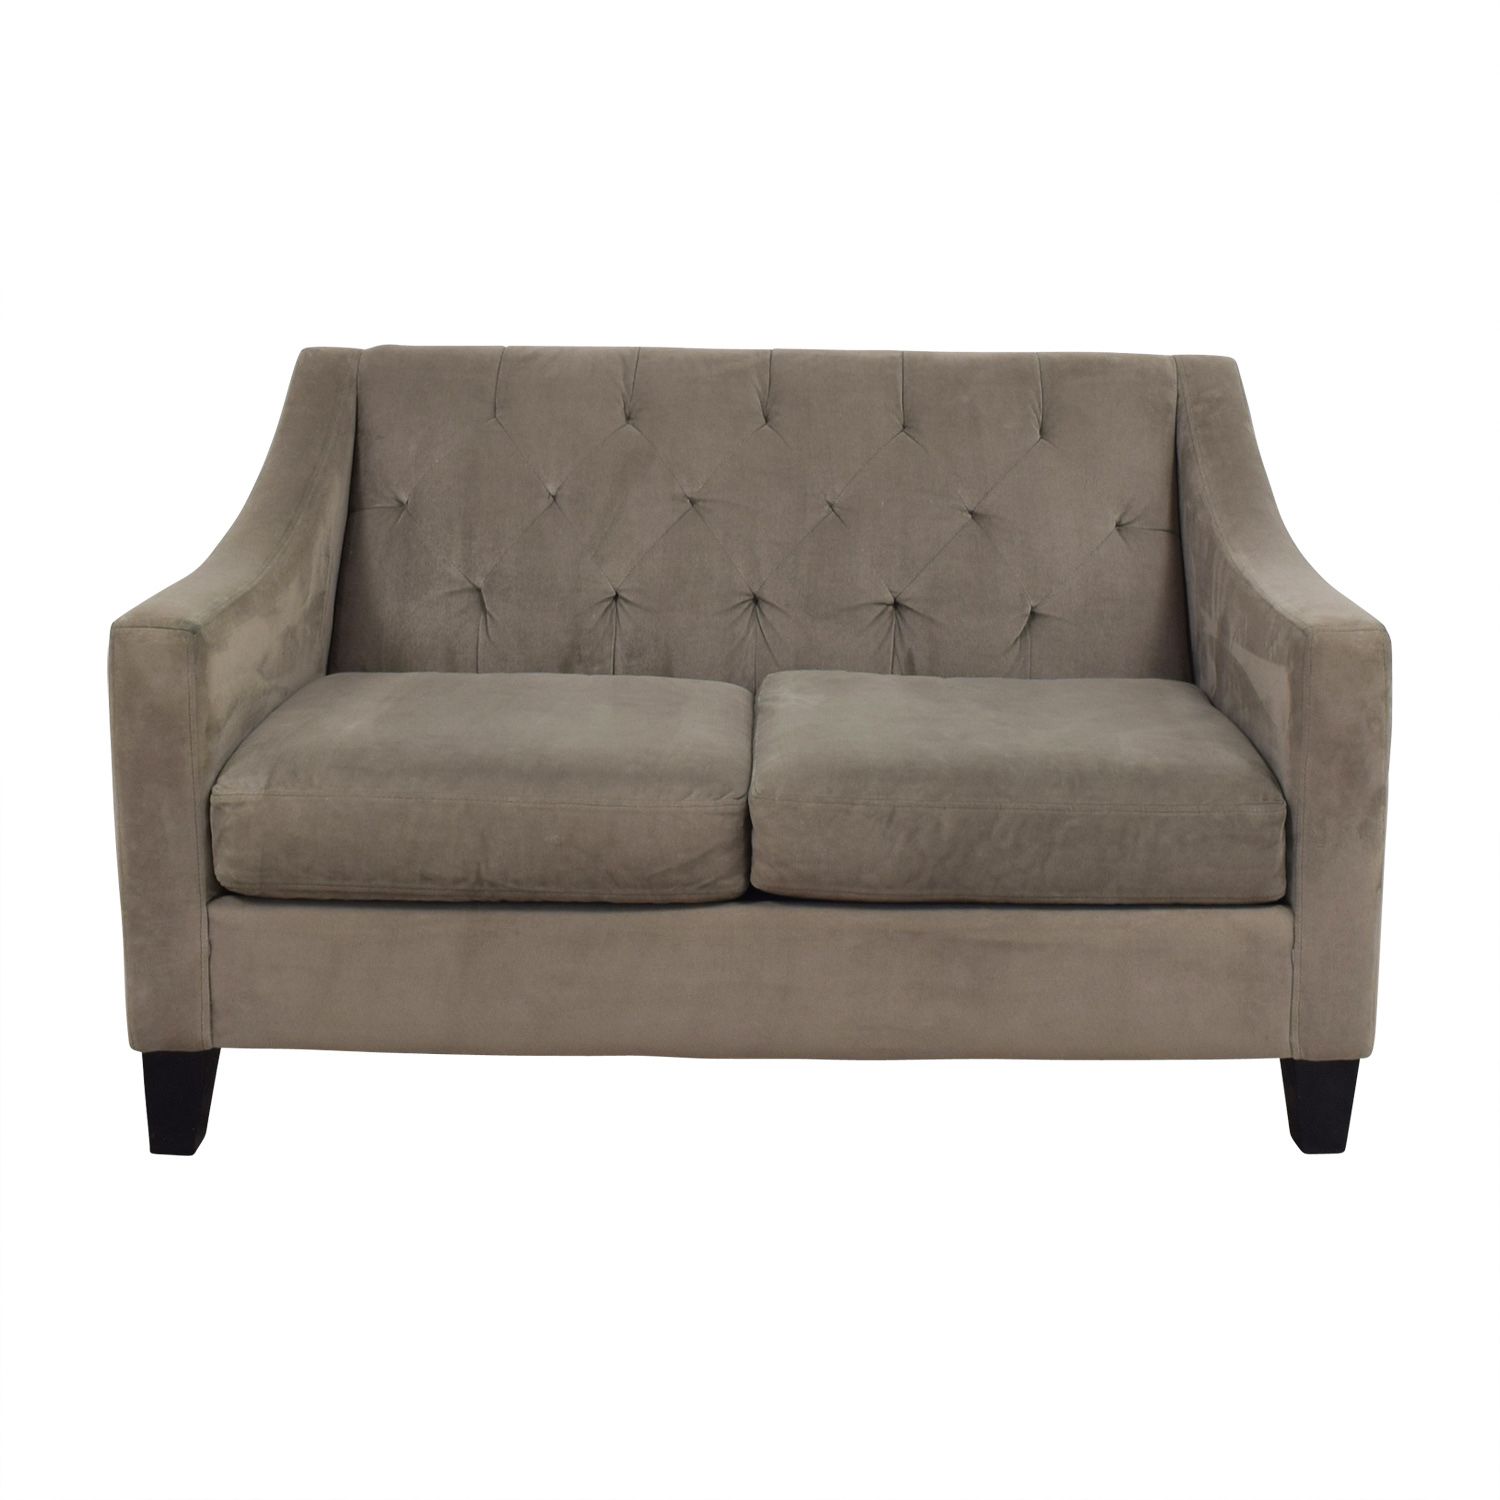 shop Better by Design Better by Design Grey Tufted Two-Cushion Sofa online